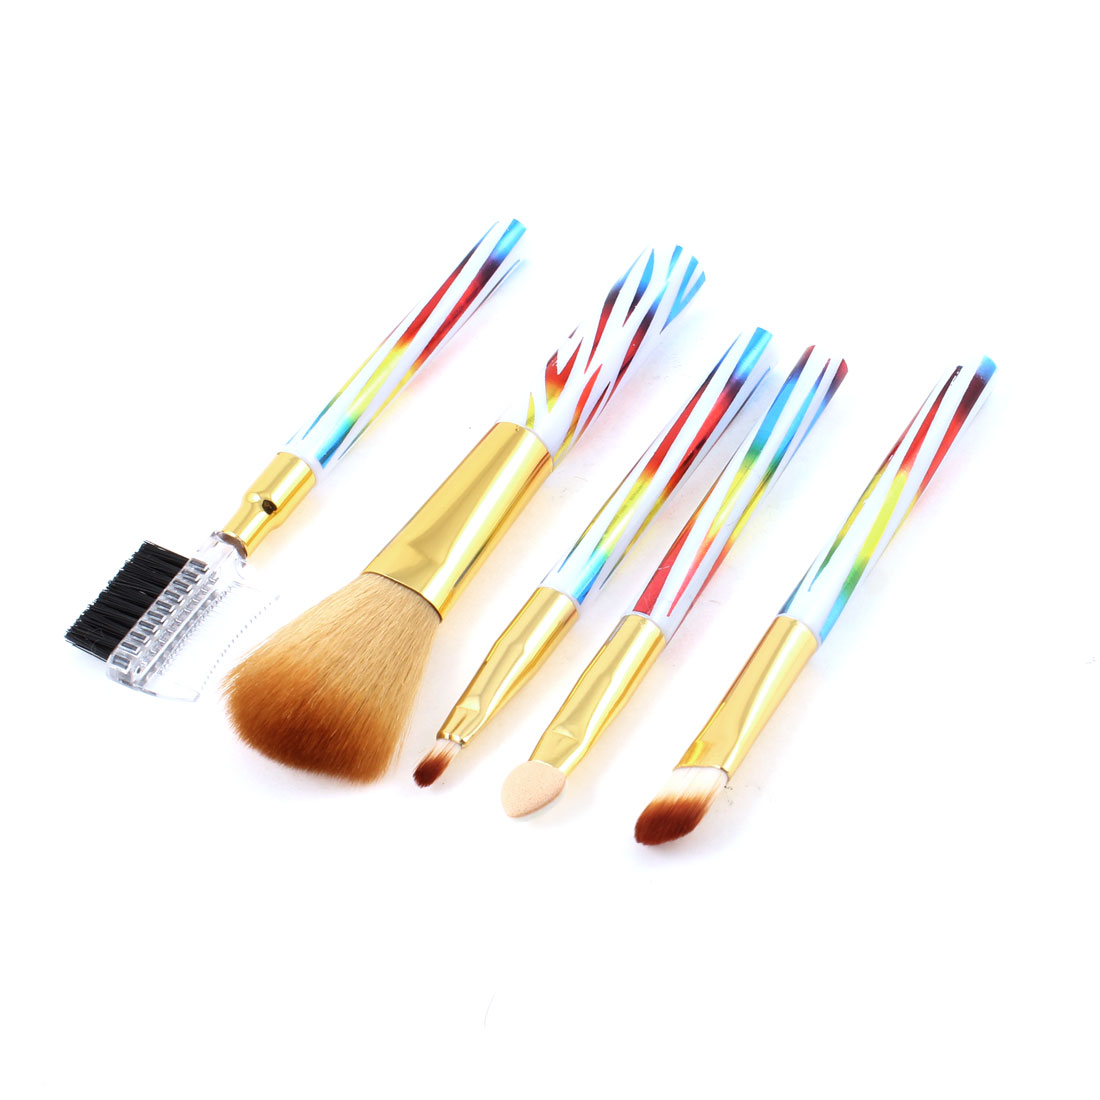 Colorful Handle Beauty Tool Brush Set Eyebrows Comb Eyeshadow Applicator 5pcs